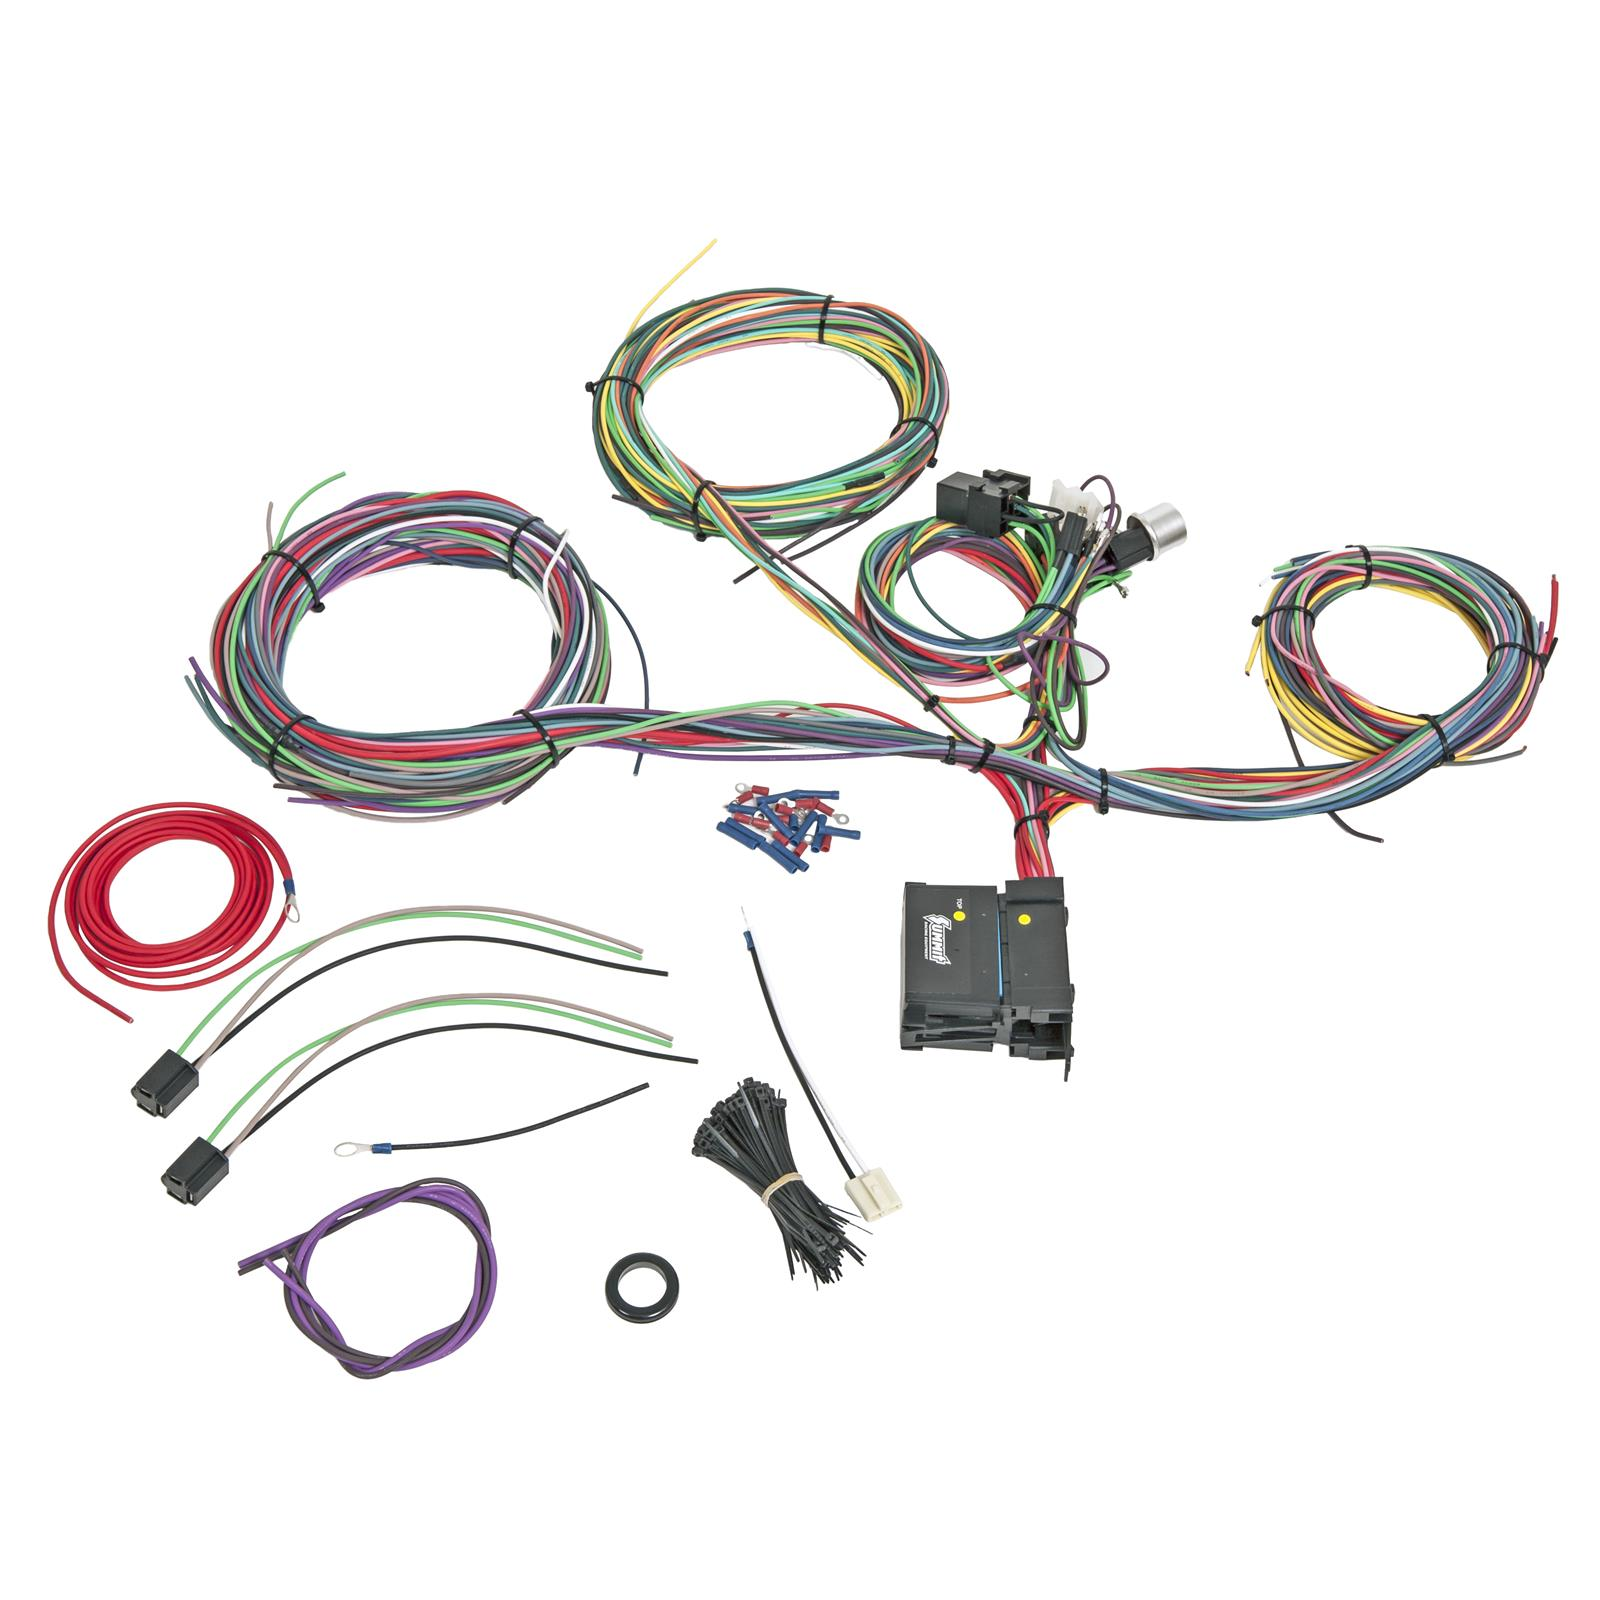 sum 890021_xl summit racing� 18 circuit universal wiring harnesses sum 890021 packard wiring harness at gsmportal.co